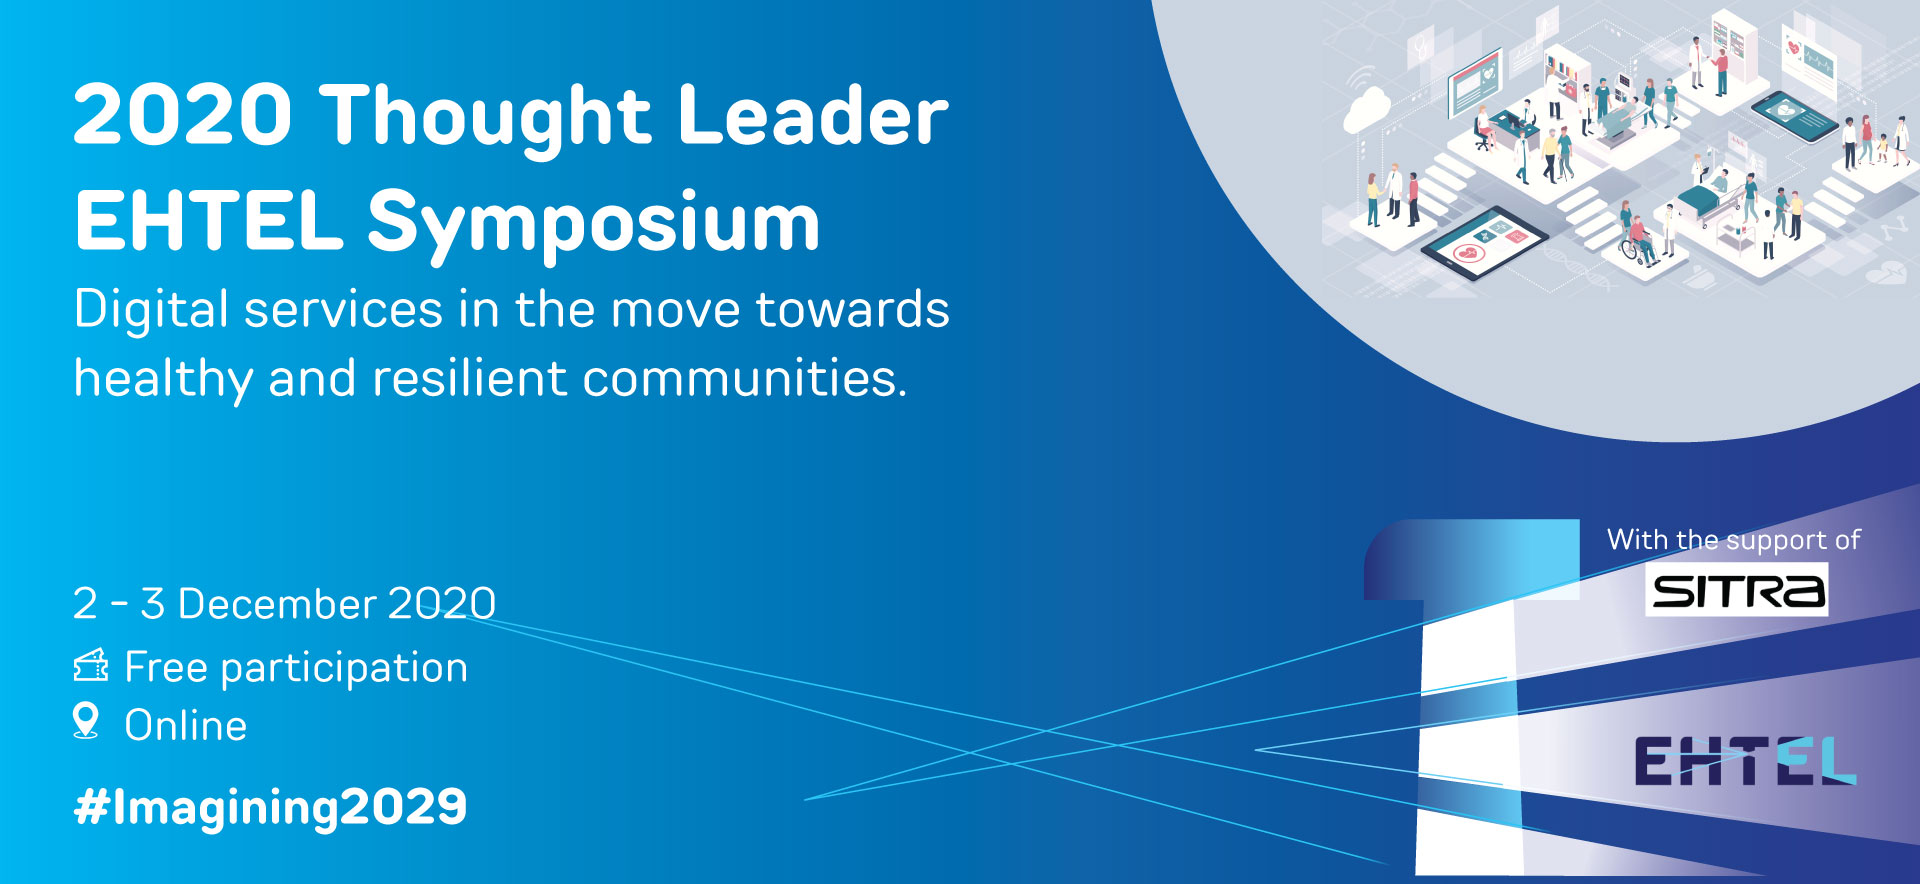 2020 Thought Leader EHTEL Symposium - details about the event